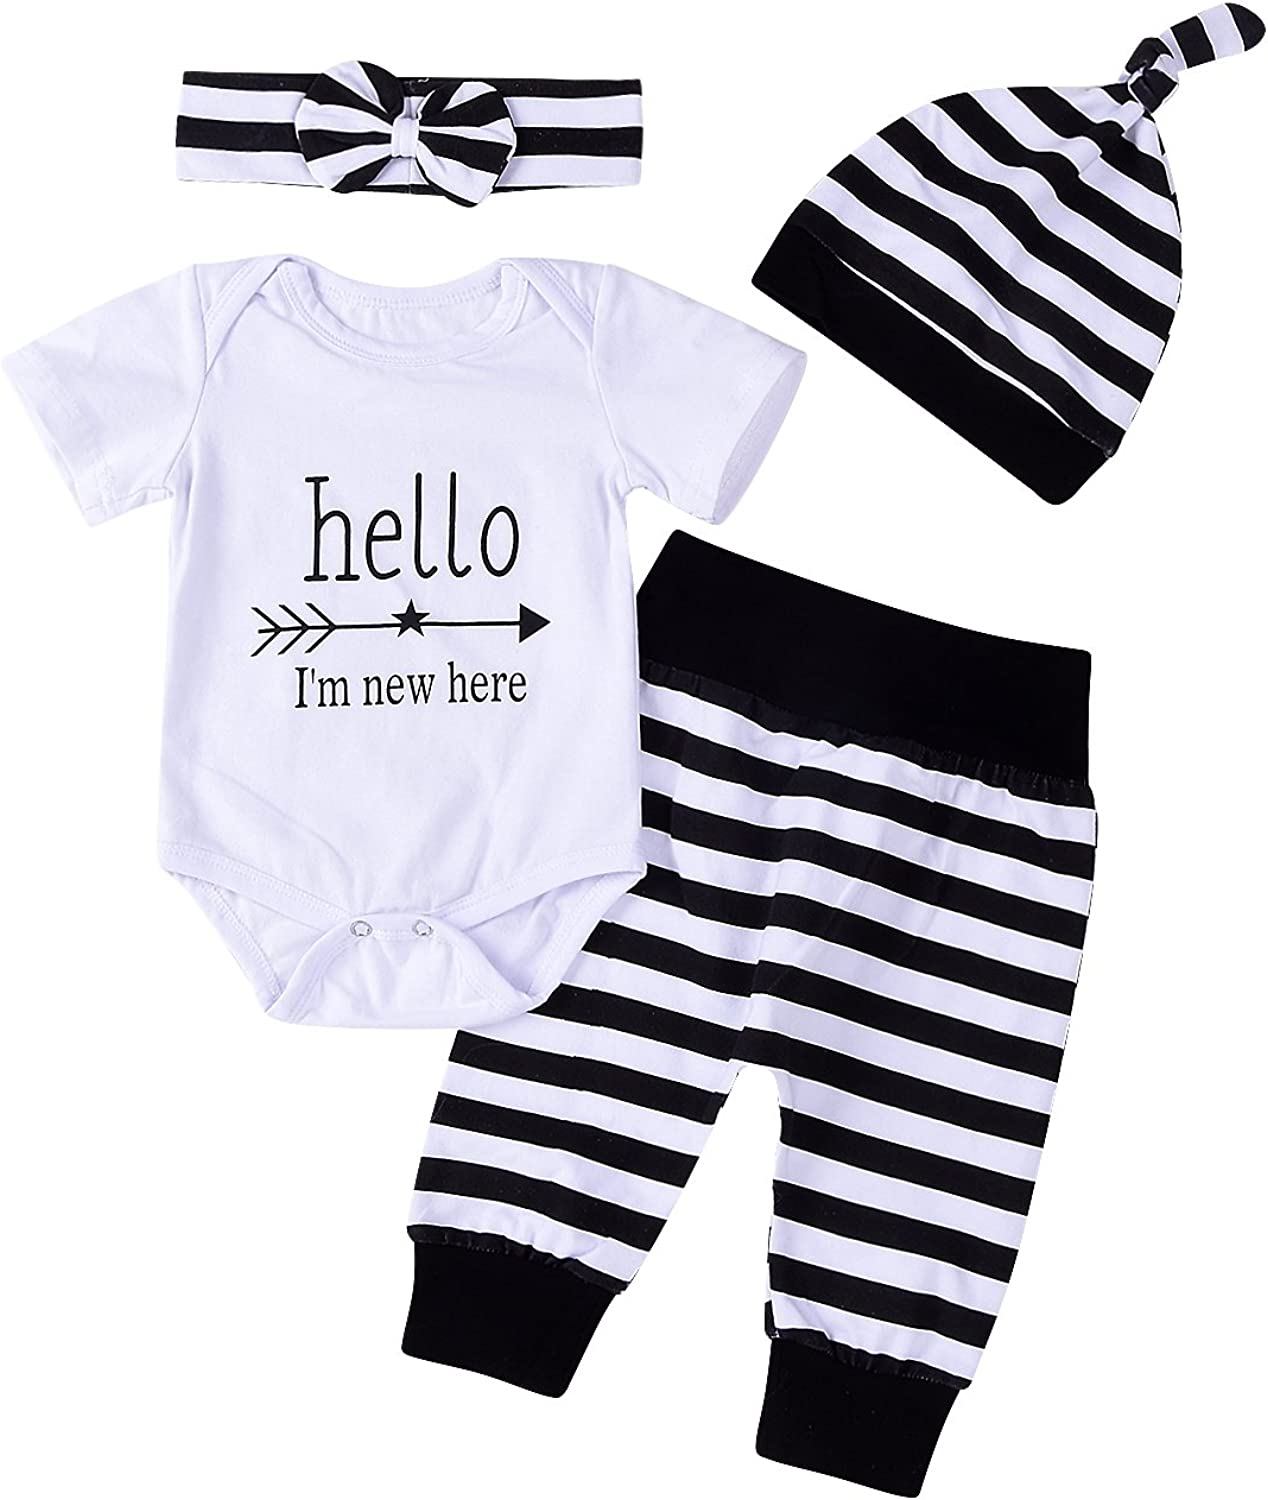 The Best Unisex Newborn Outfits For Coming Home